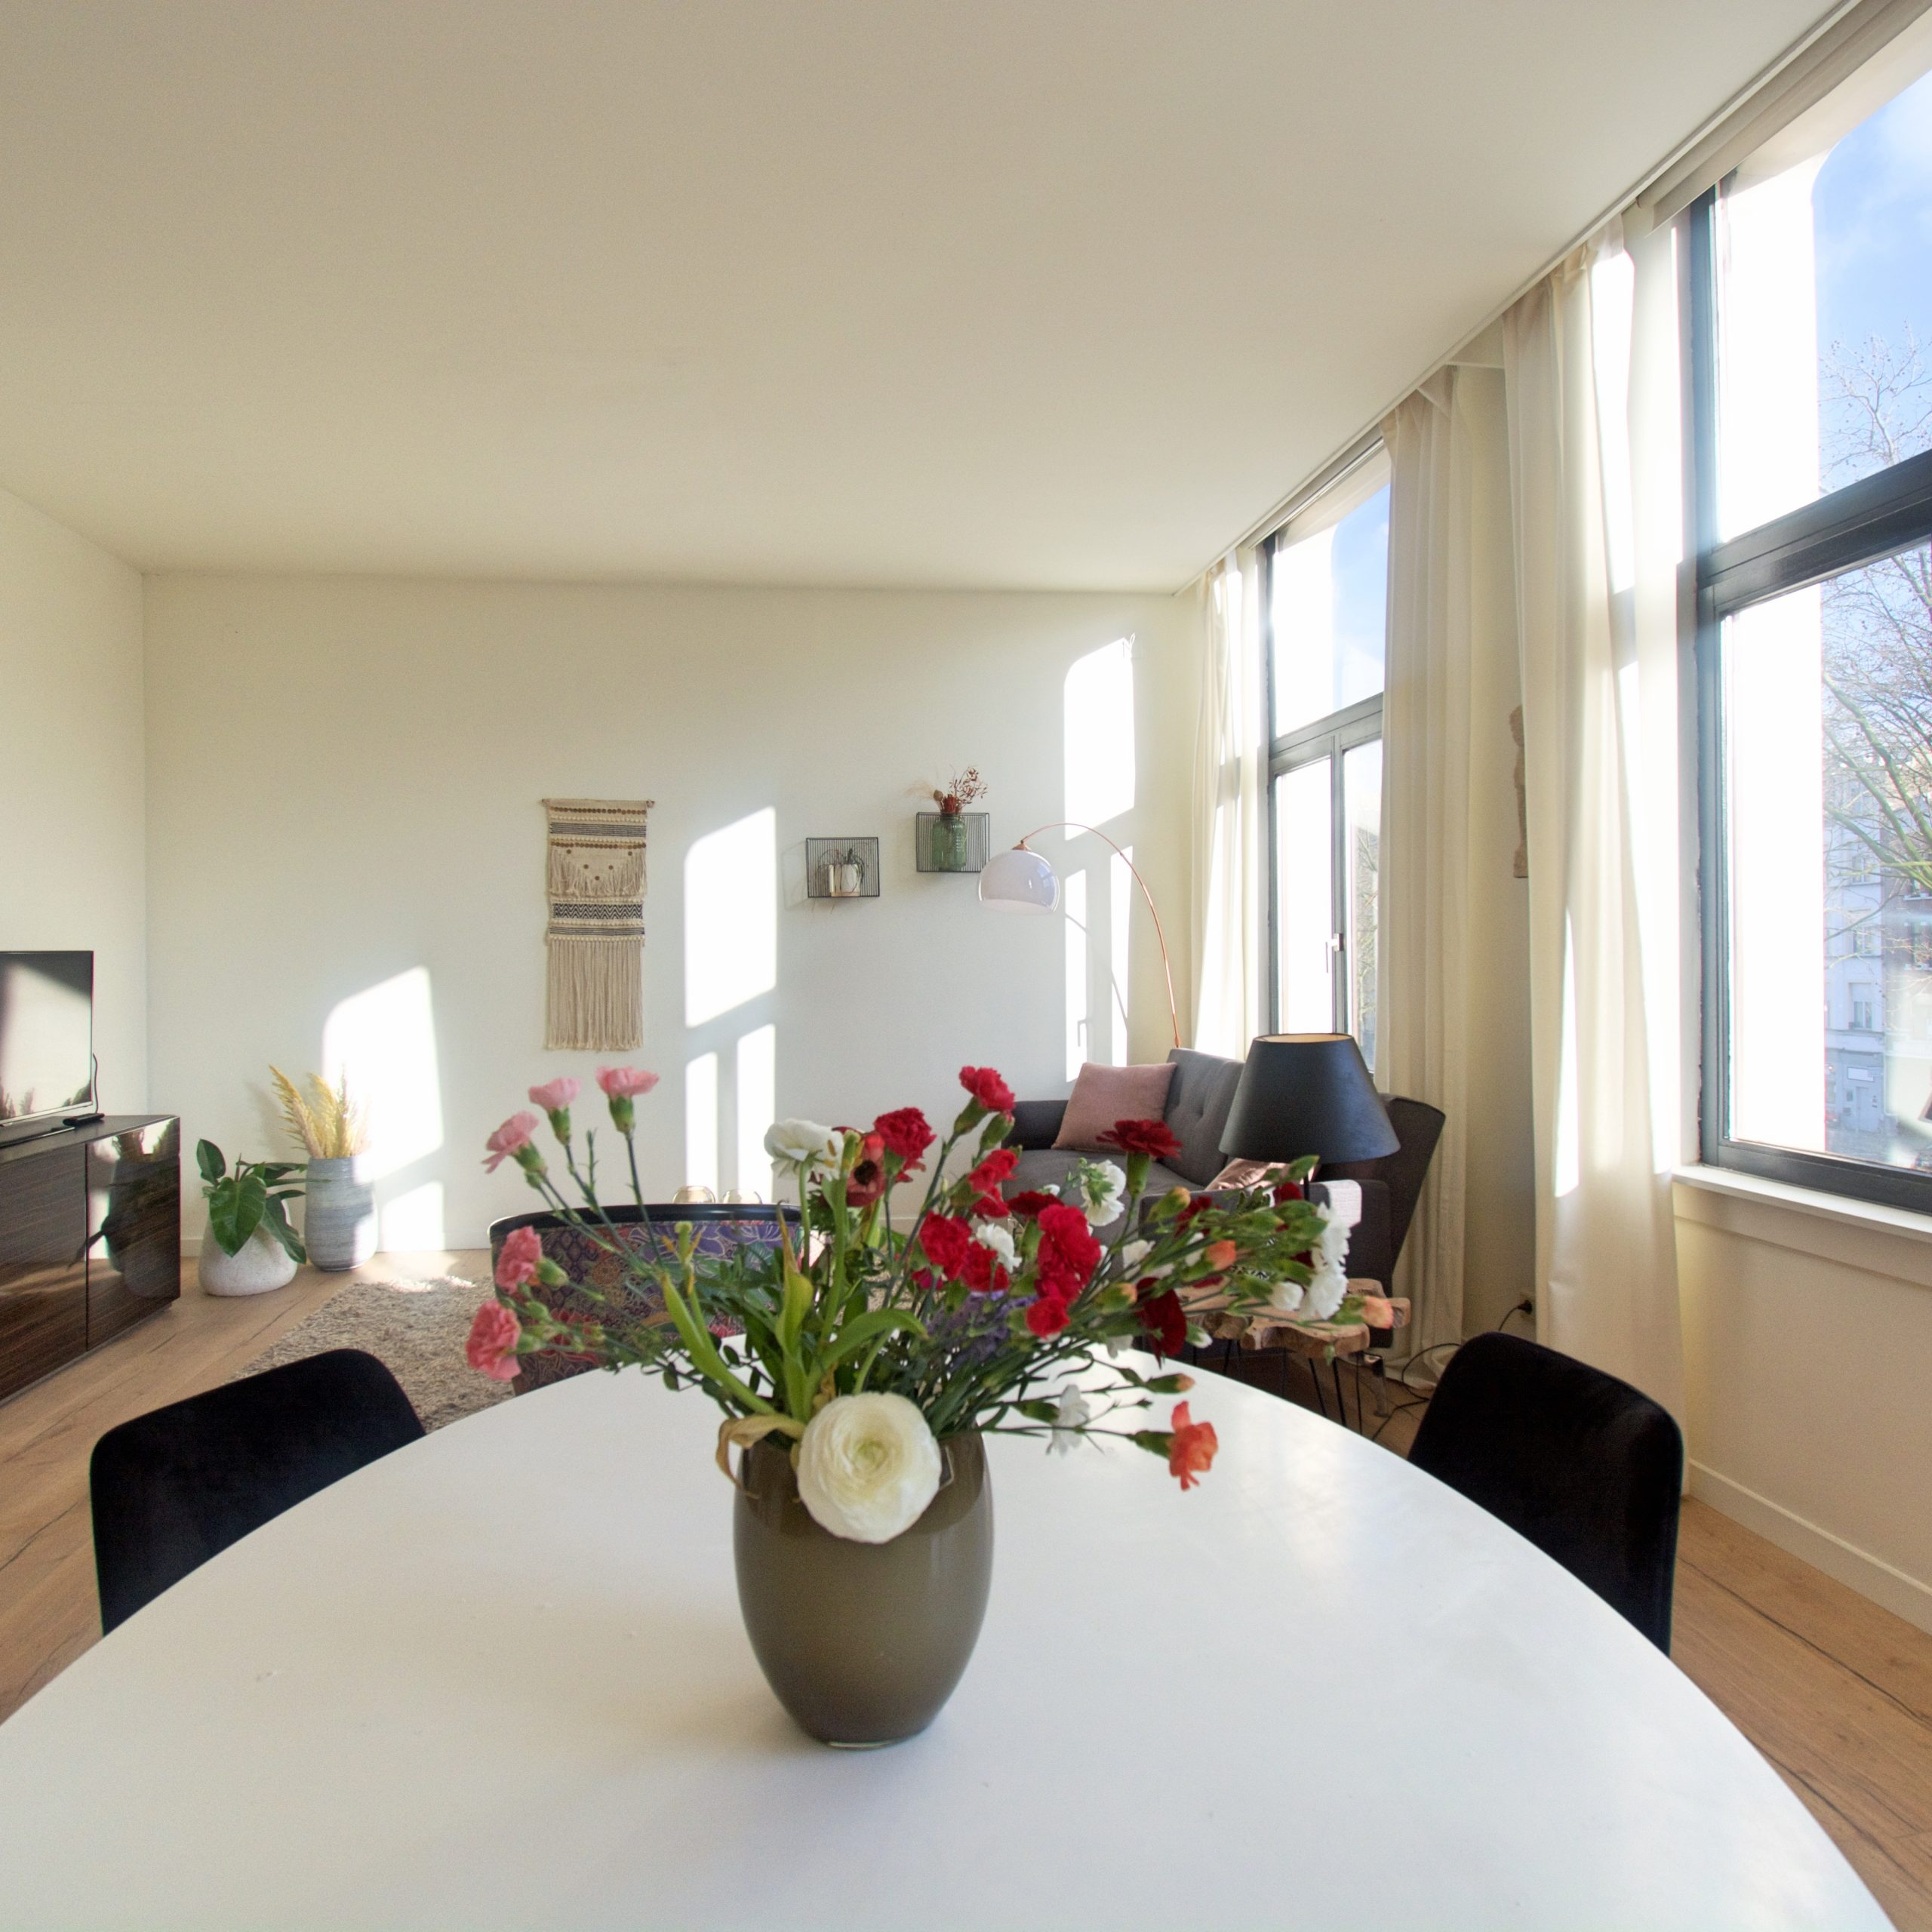 Leeuwenrui 2 - Luxury flat in Antwerp for rent